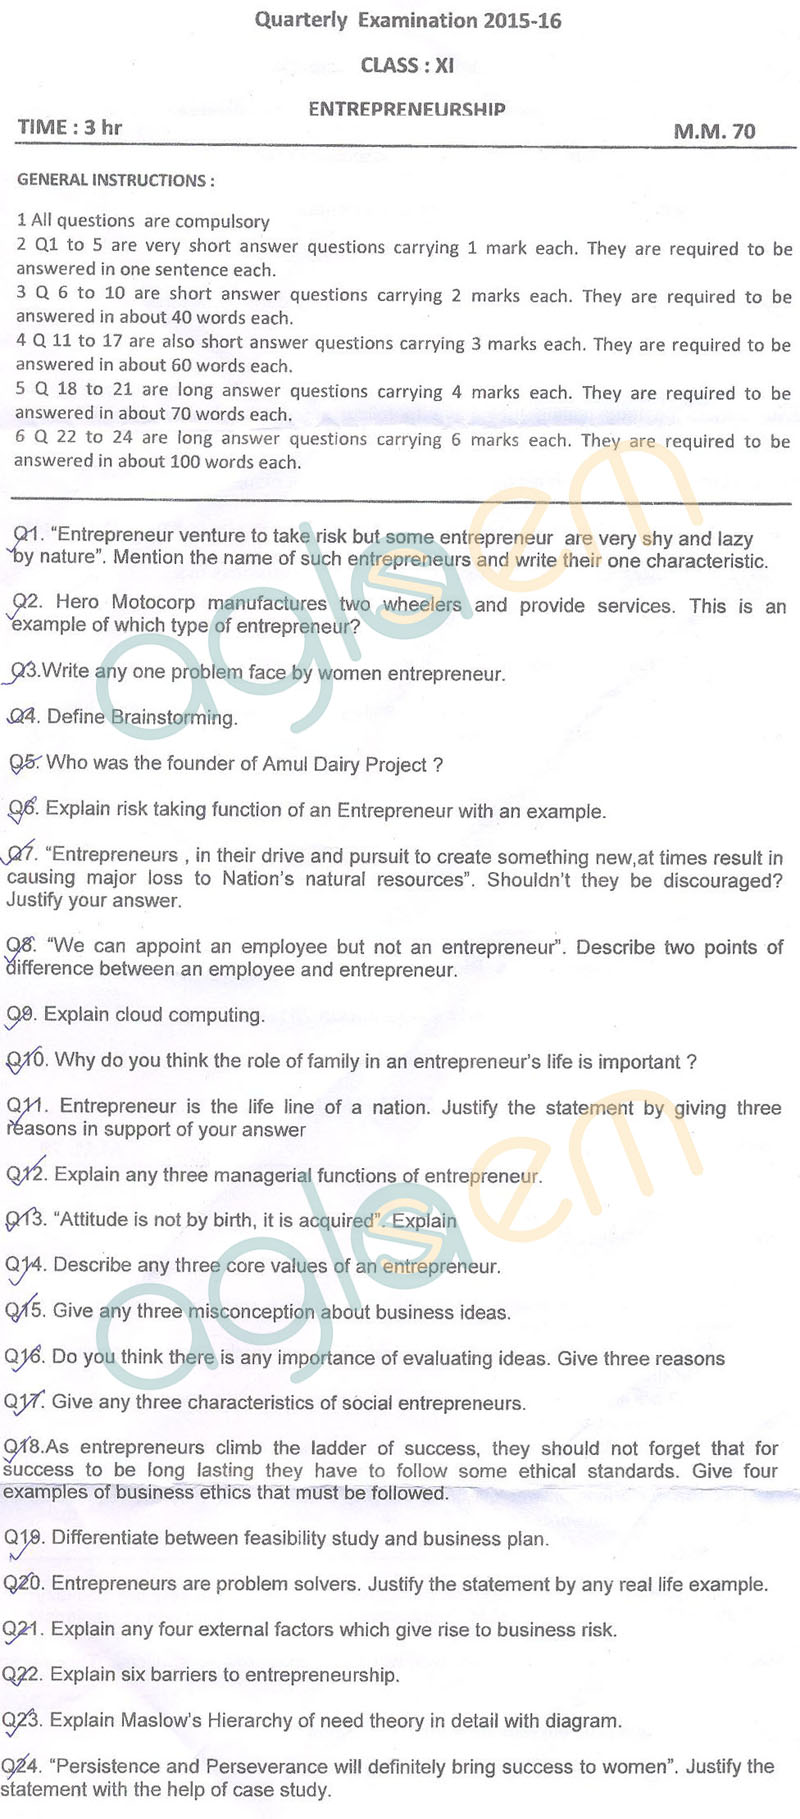 cbse class quarterly question papers aglasem schools entrepreneurship